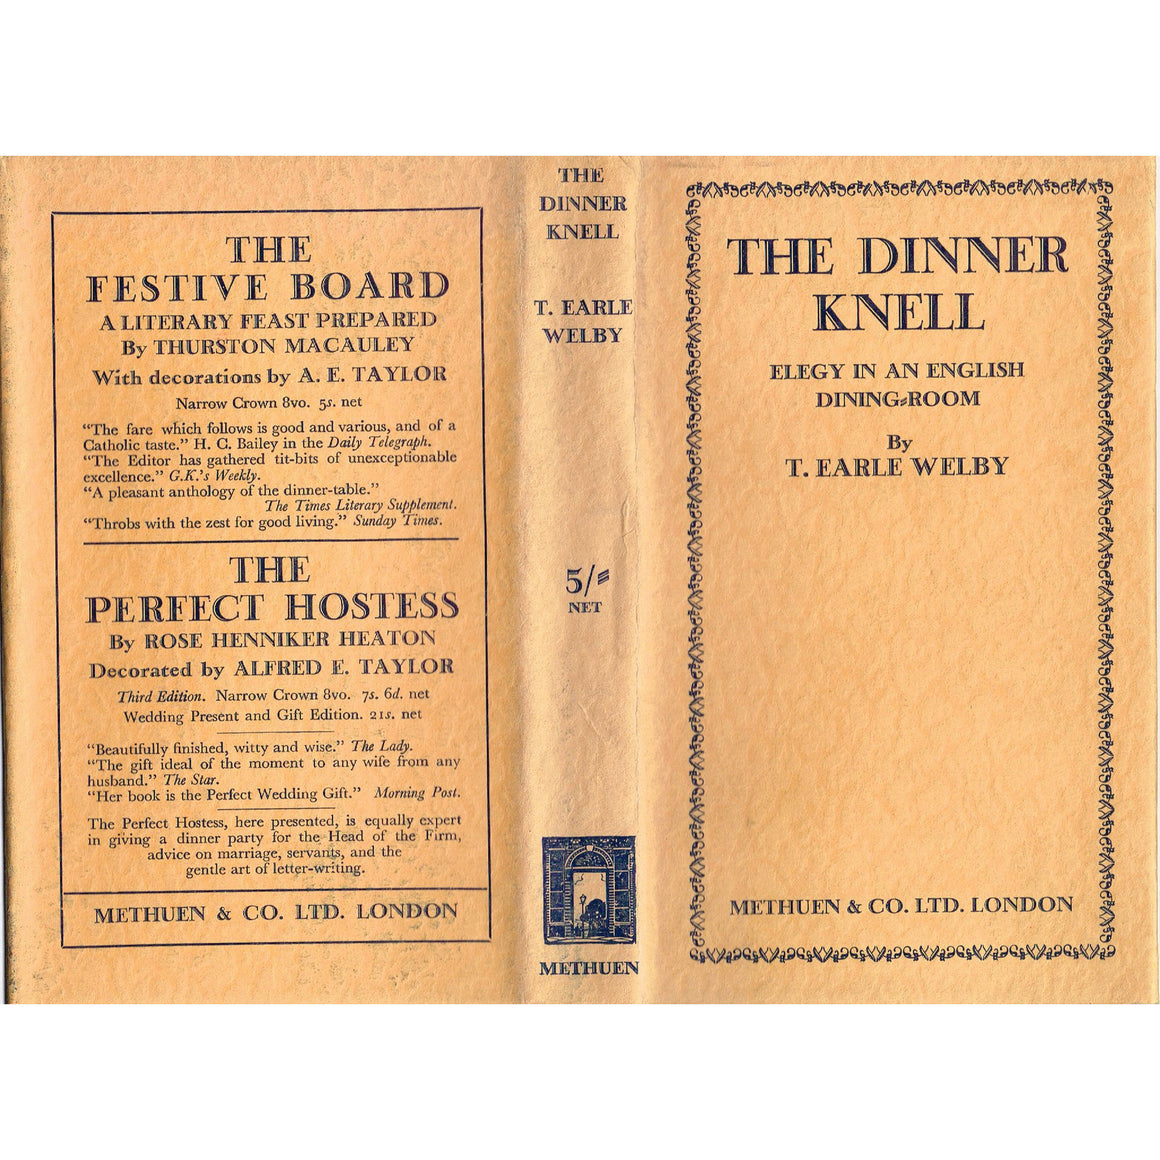 The Dinner Knell: Elegy in an English Dining Room